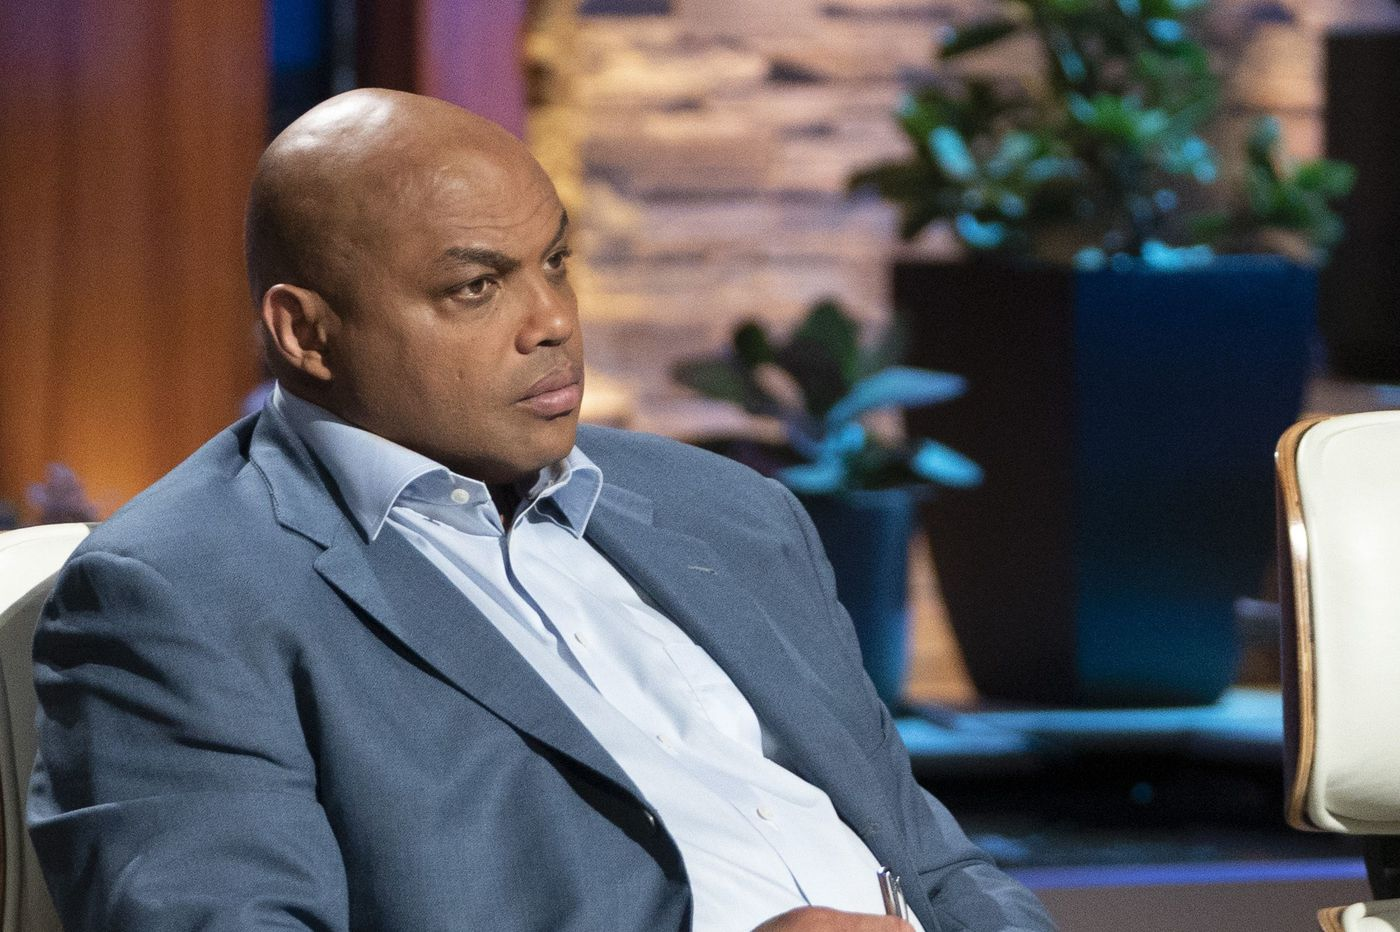 Charles Barkley funds foot odor product, shades Shaq on 'Shark Tank'